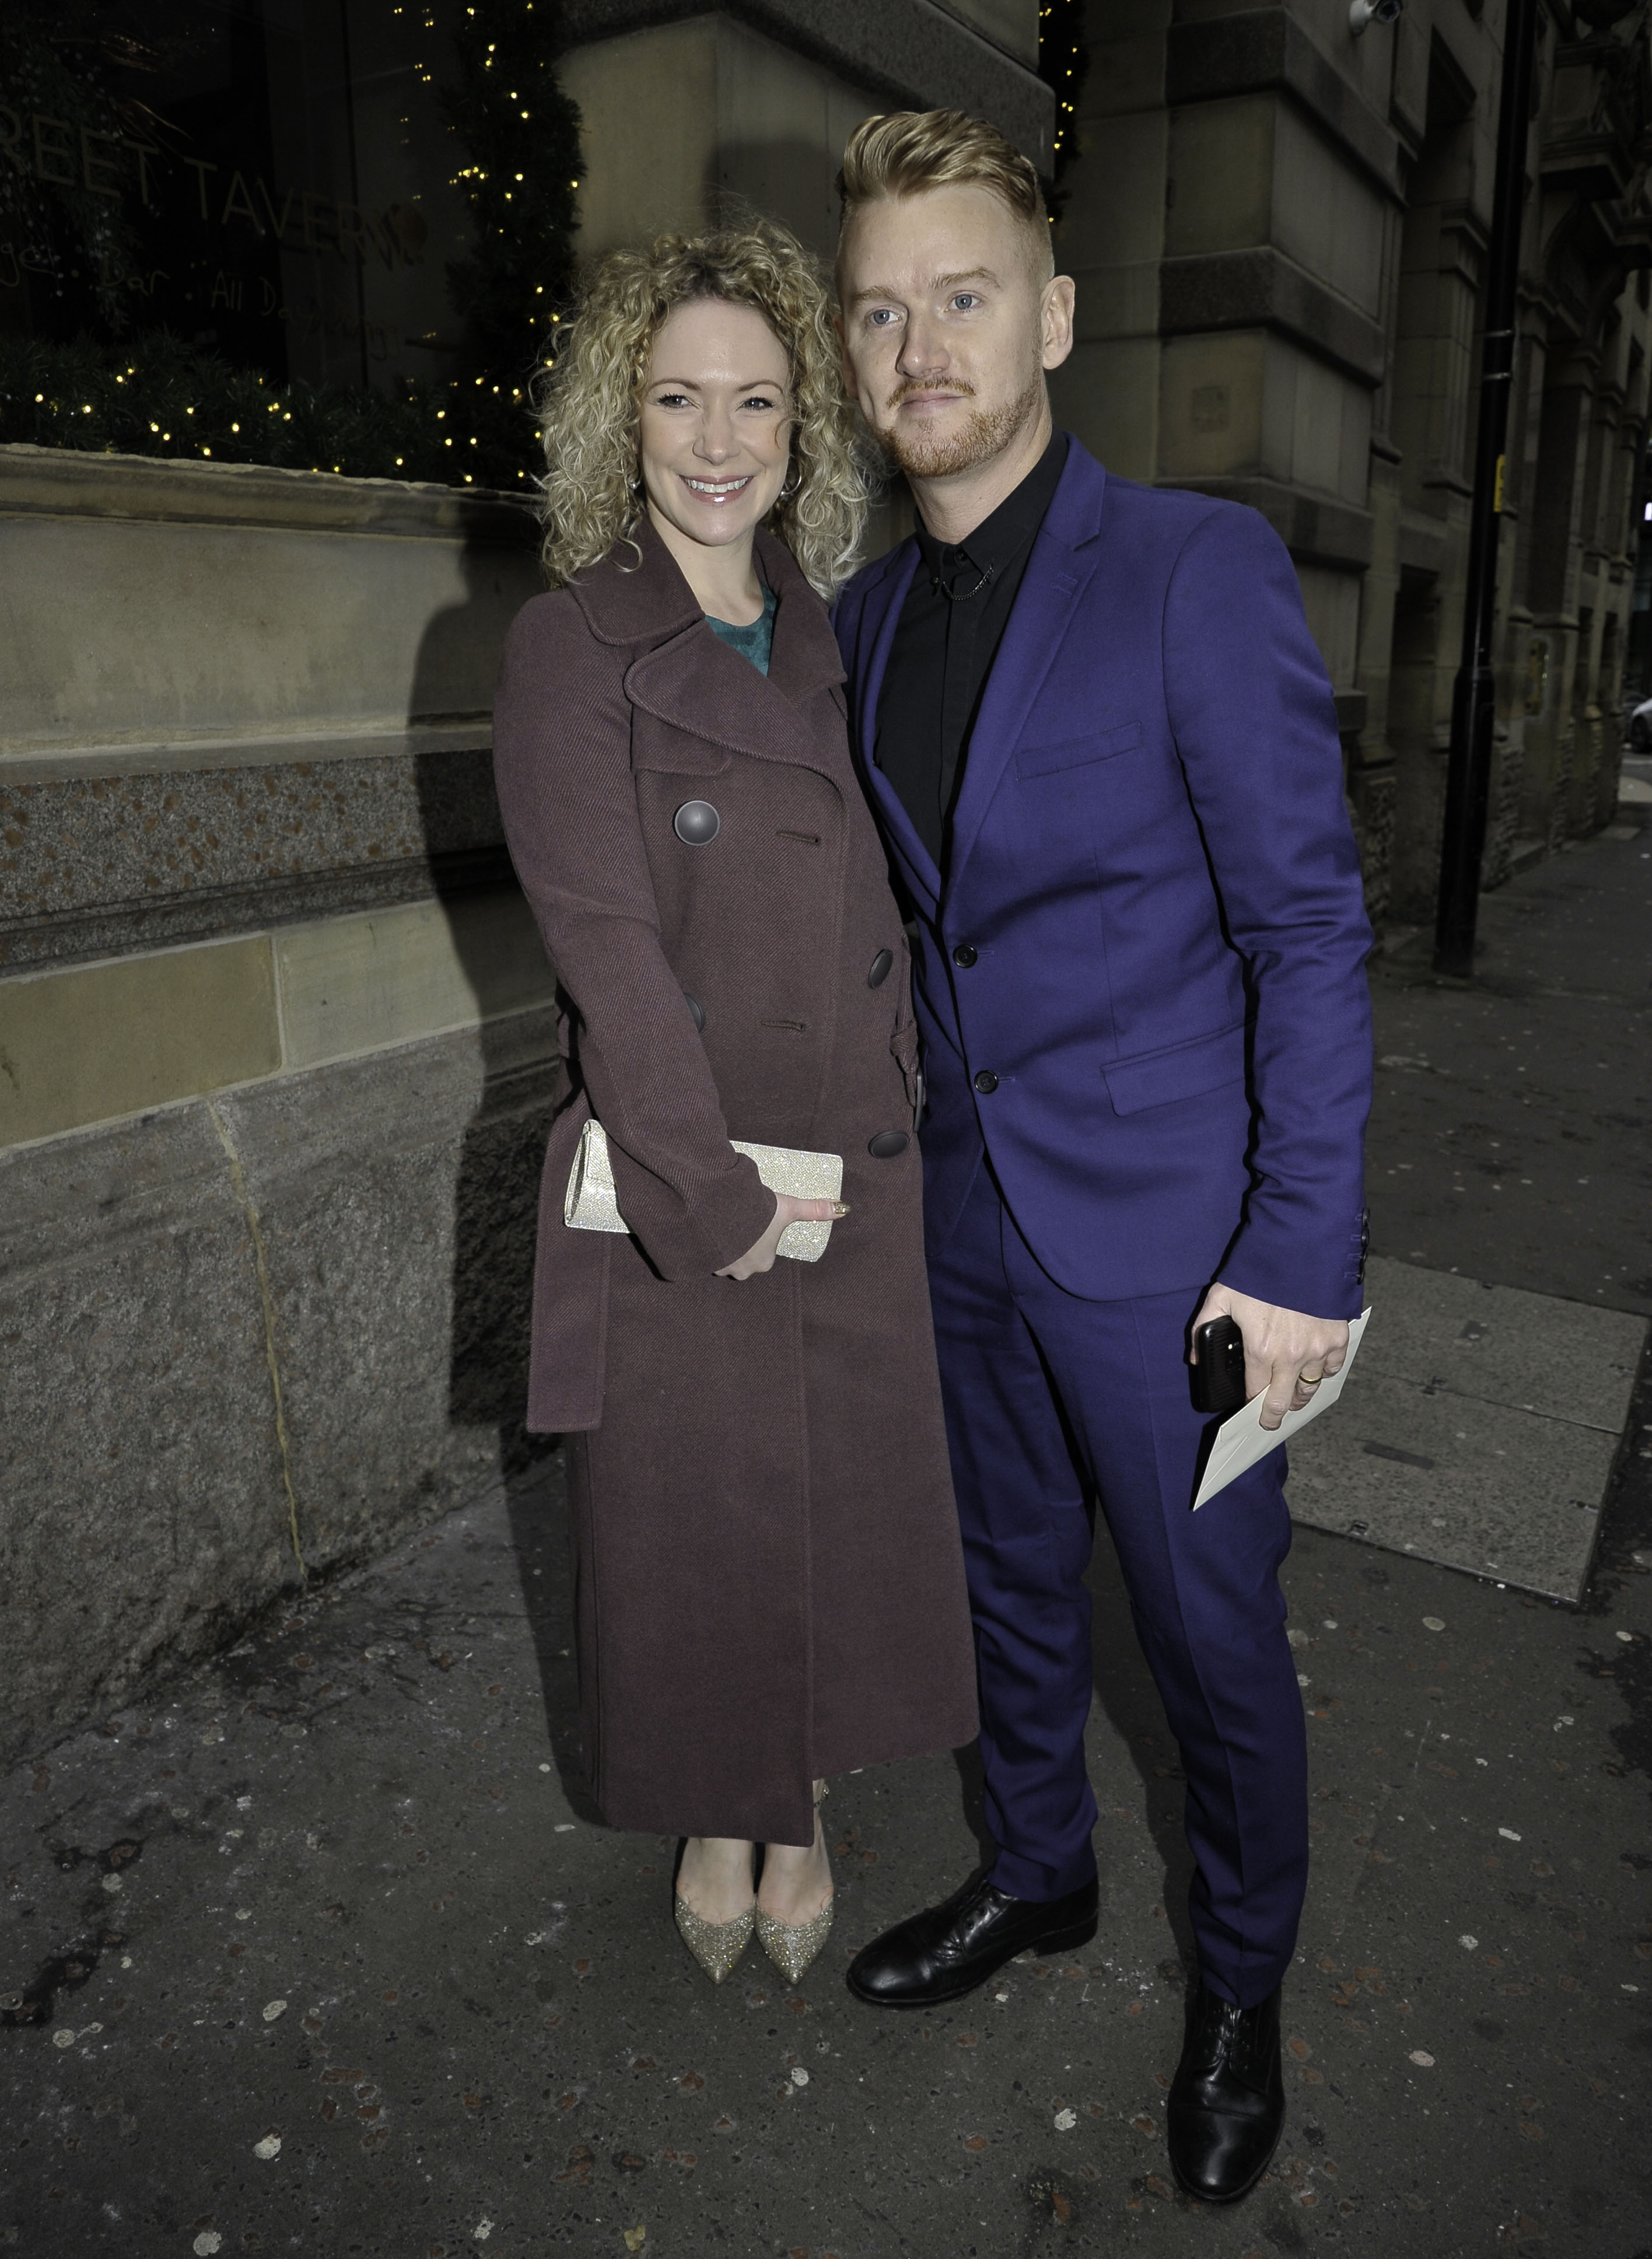 Coronation Street cast pictured arriving at Tina O'Brien wedding in Manchester City Centre. Pictured: Mikey North Ref: SPL5052162 311218 NON-EXCLUSIVE Picture by: Aaron Parfitt / SplashNews.com Splash News and Pictures Los Angeles: 310-821-2666 New York: 212-619-2666 London: 0207 644 7656 Milan: 02 4399 8577 photodesk@splashnews.com World Rights